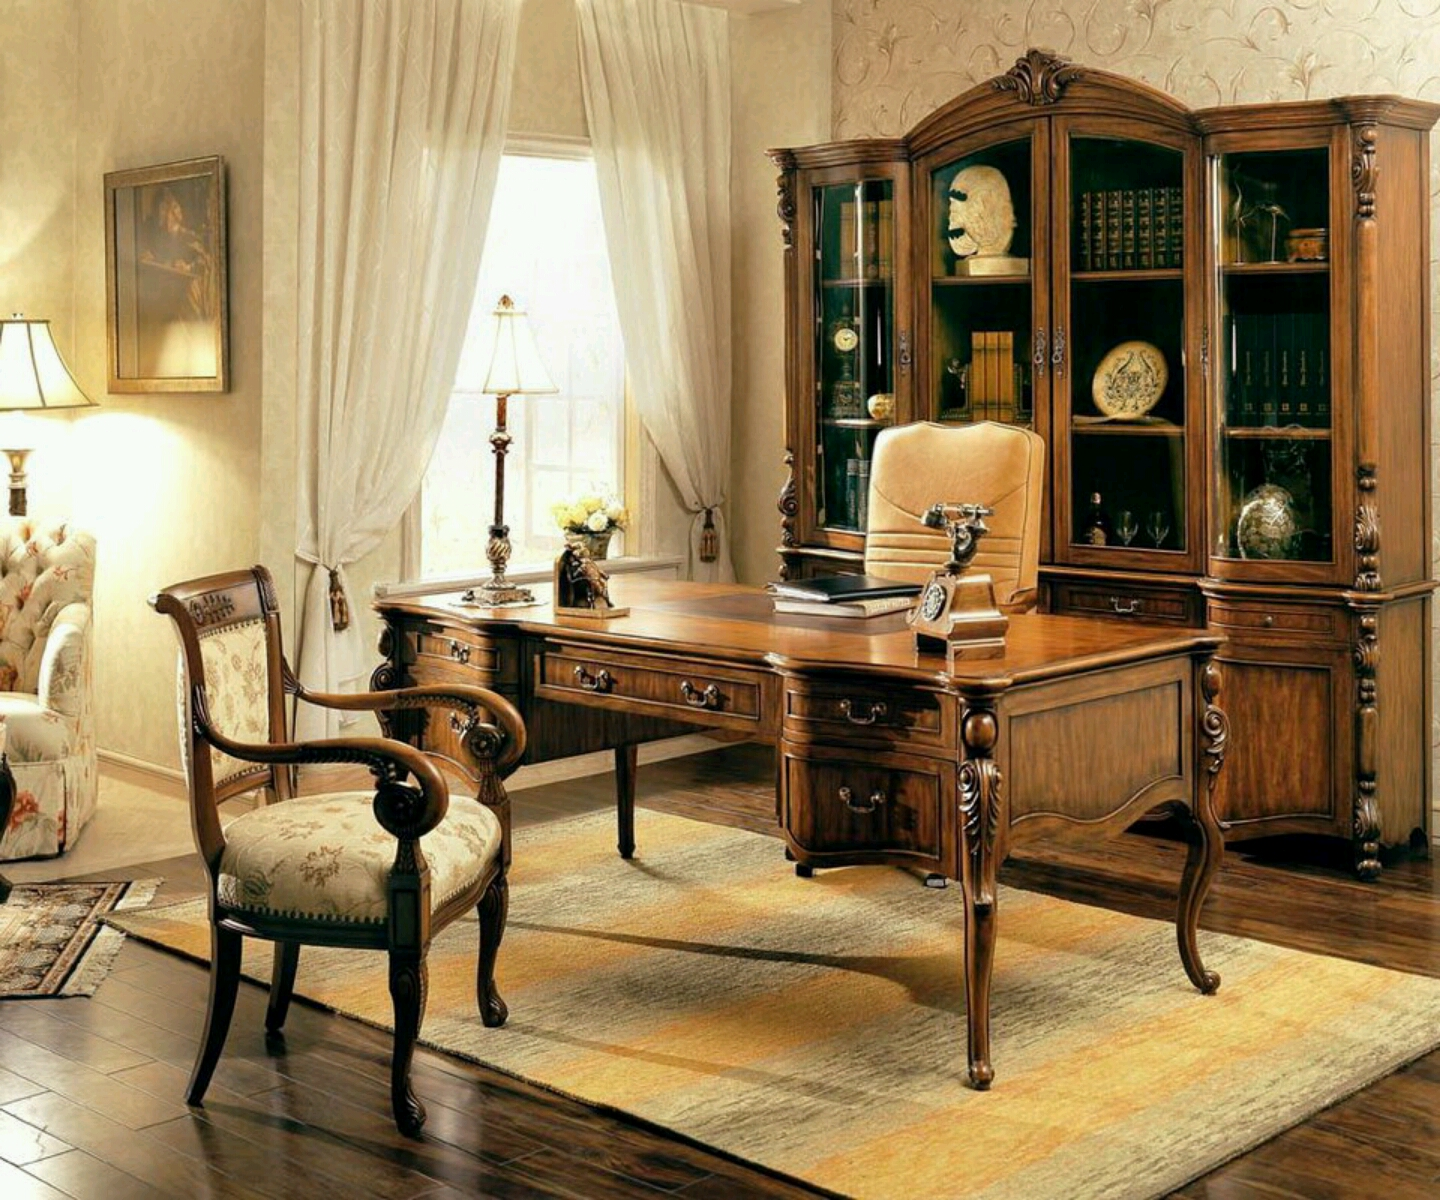 Modern furniture modern study room furnitures designs ideas - Study room furniture designe ...